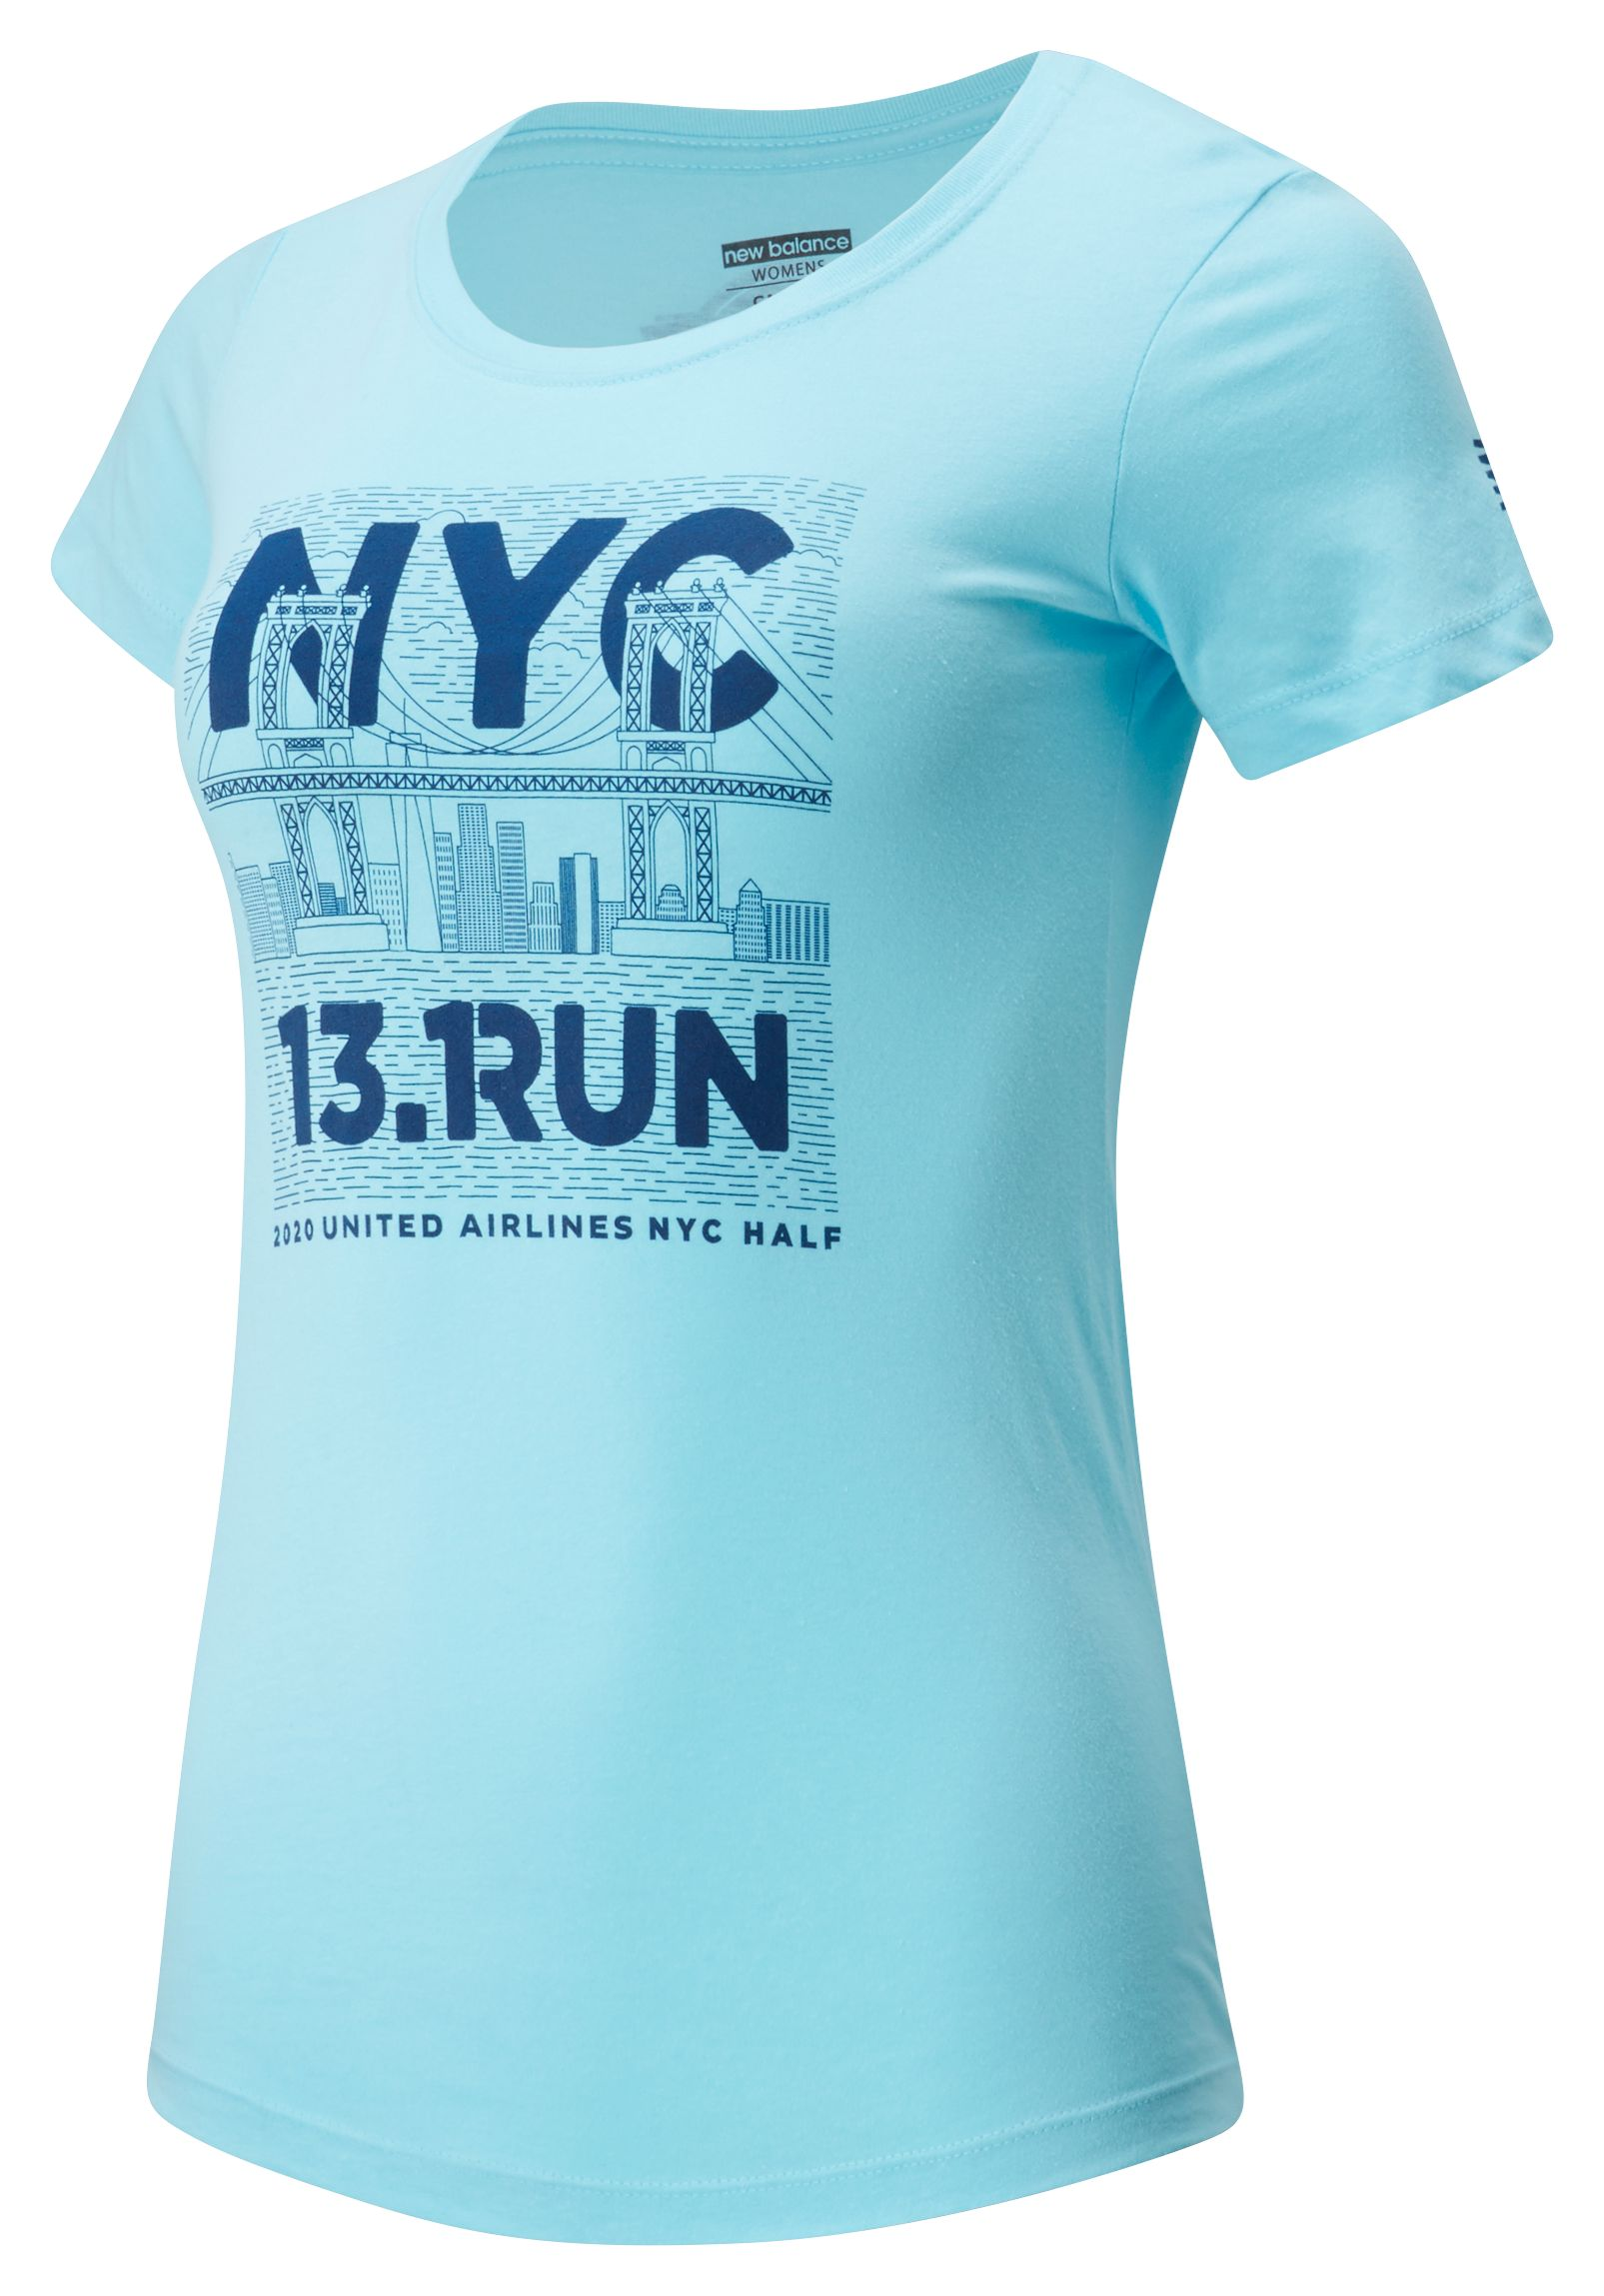 Women's 2020 United Airlines Half Bridge Tee